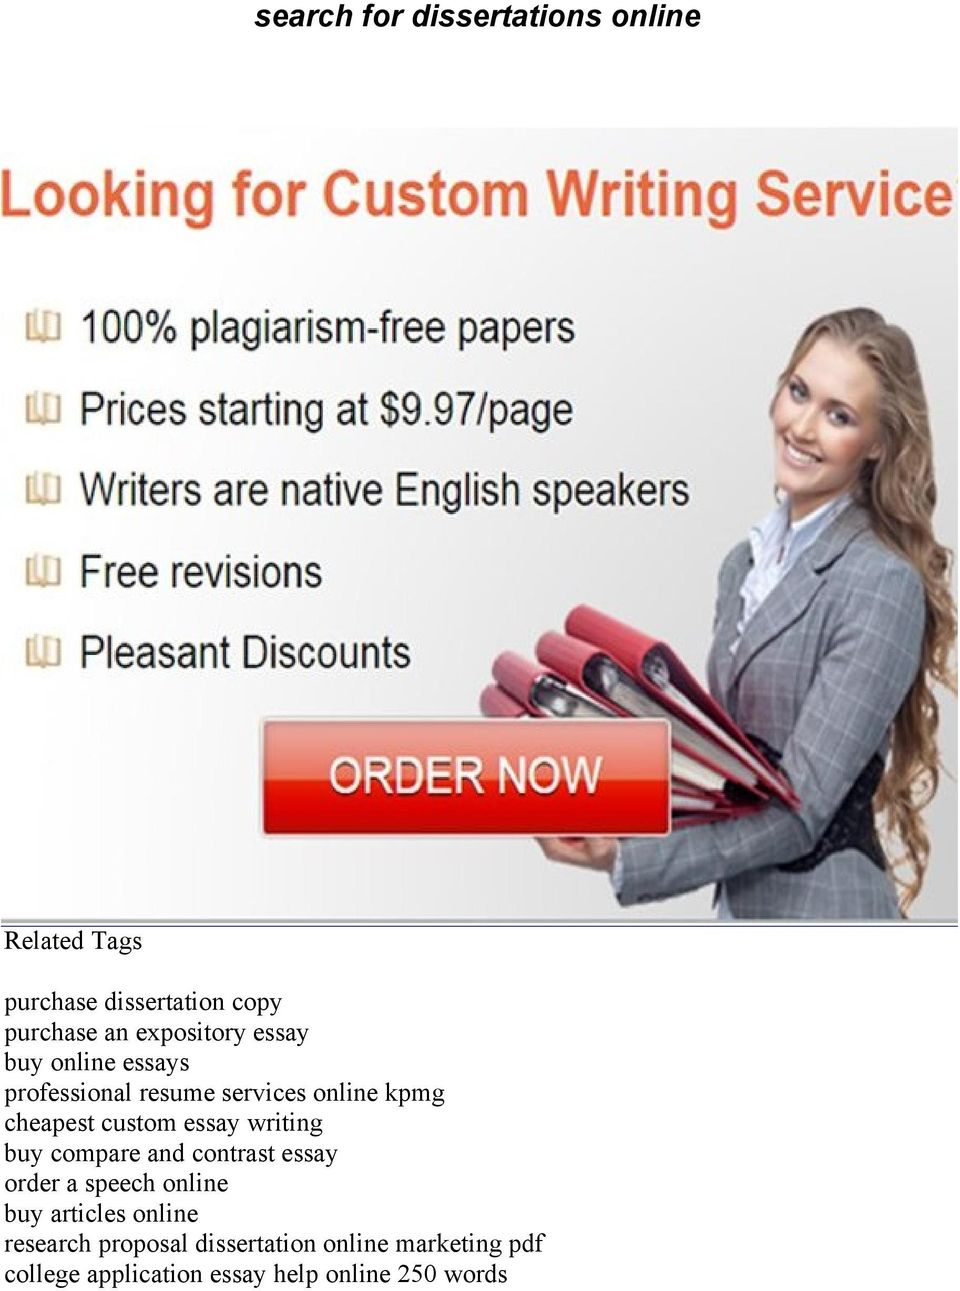 custom essay writing buy compare and contrast essay order a speech online buy articles